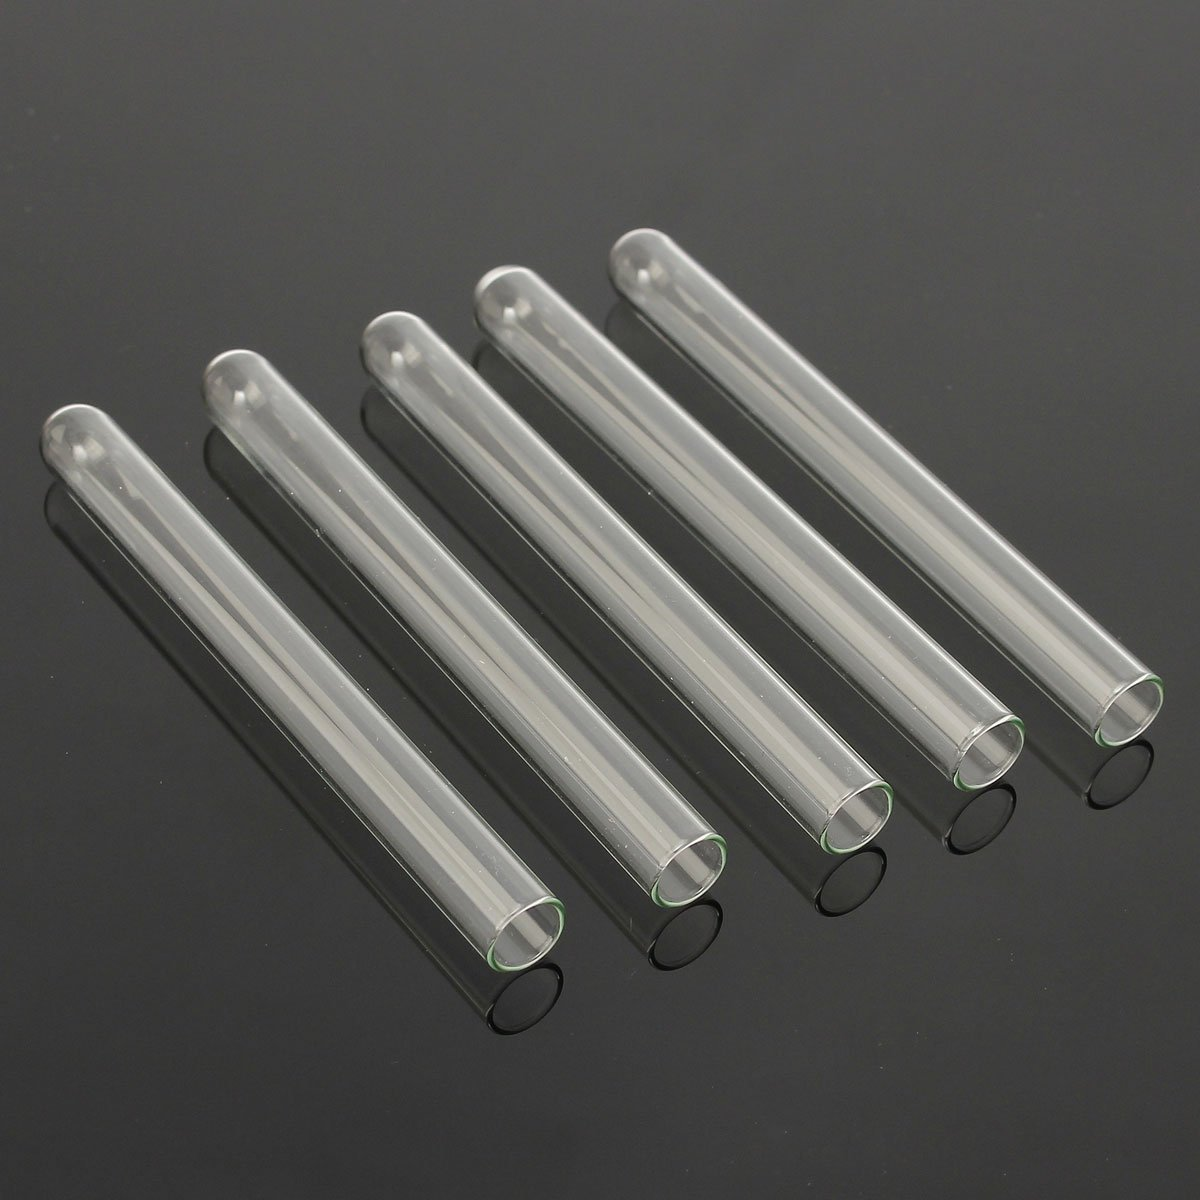 CynKen 10pcs 12x75mm Pyrex Glass Blowing Tubes Wall Test Tube